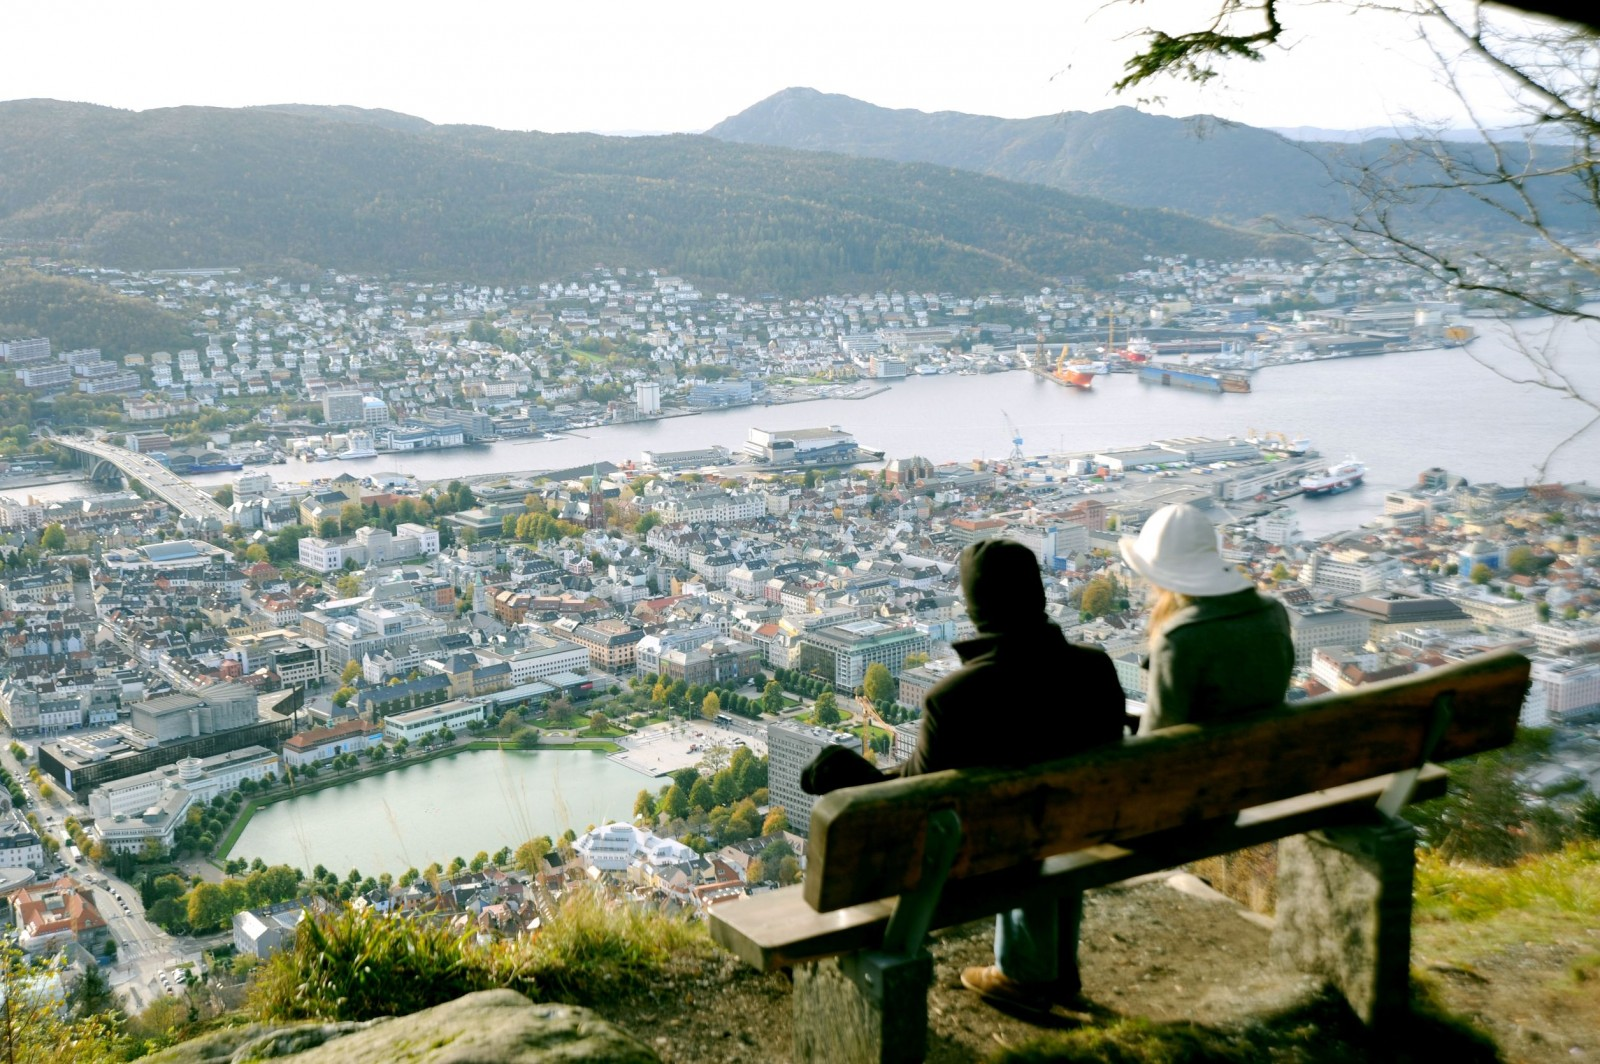 tourists-observe-the-top-view-of-bergen-norway-1600x1064.jpg